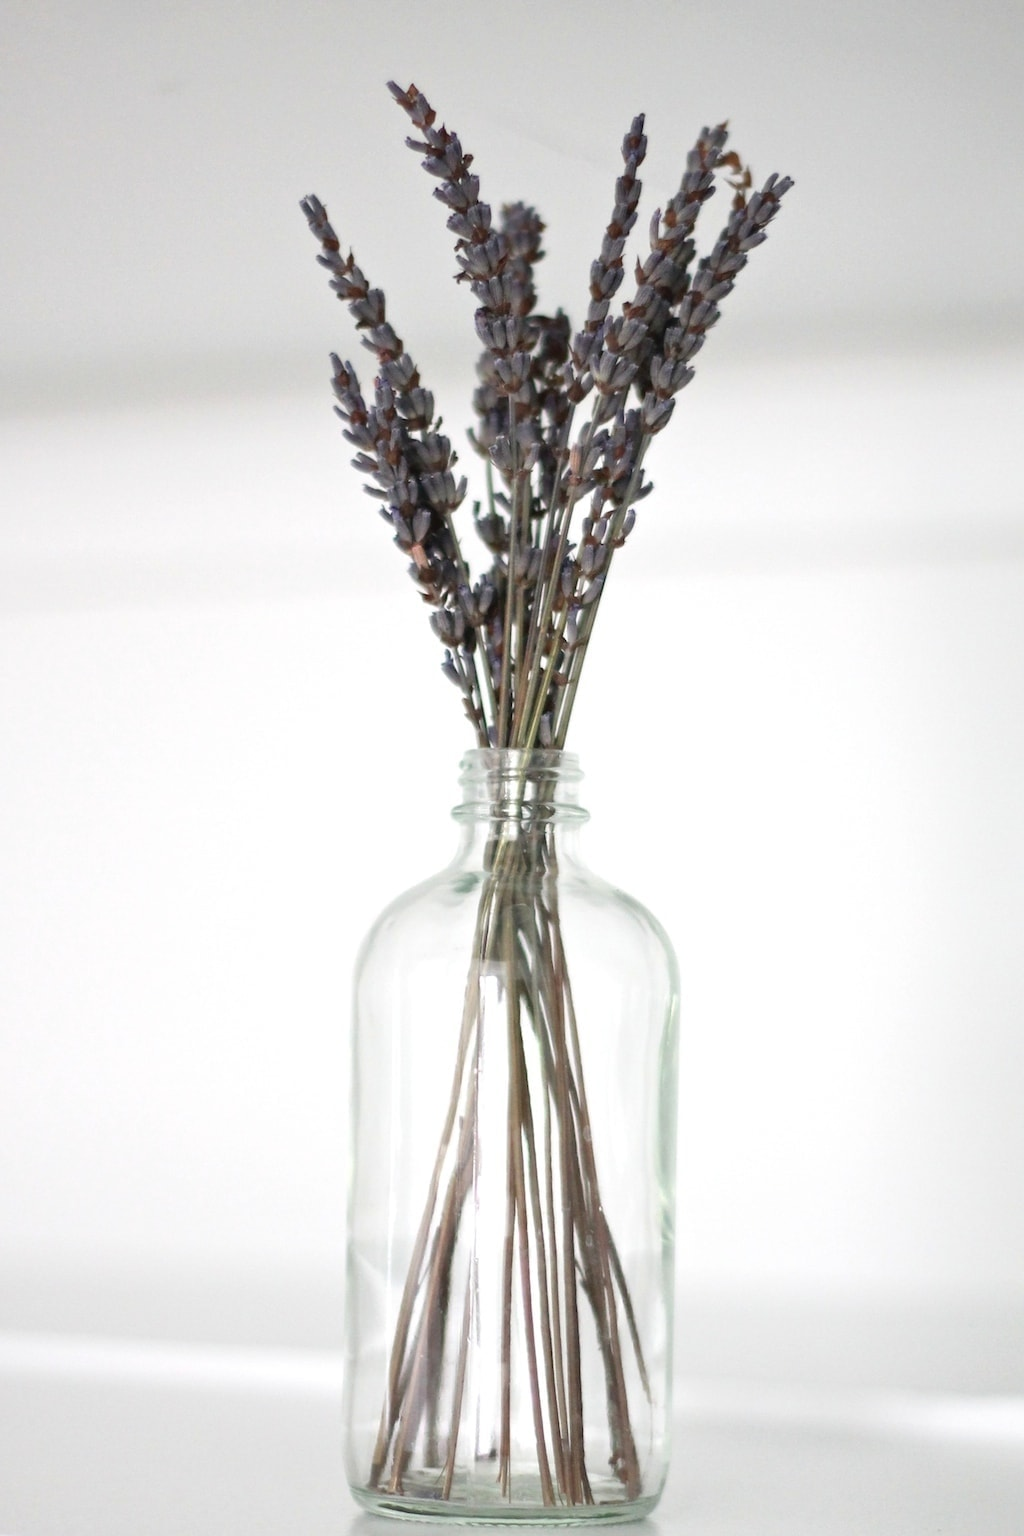 natural potpourri - lavender is a beautiful scent for a linen closet